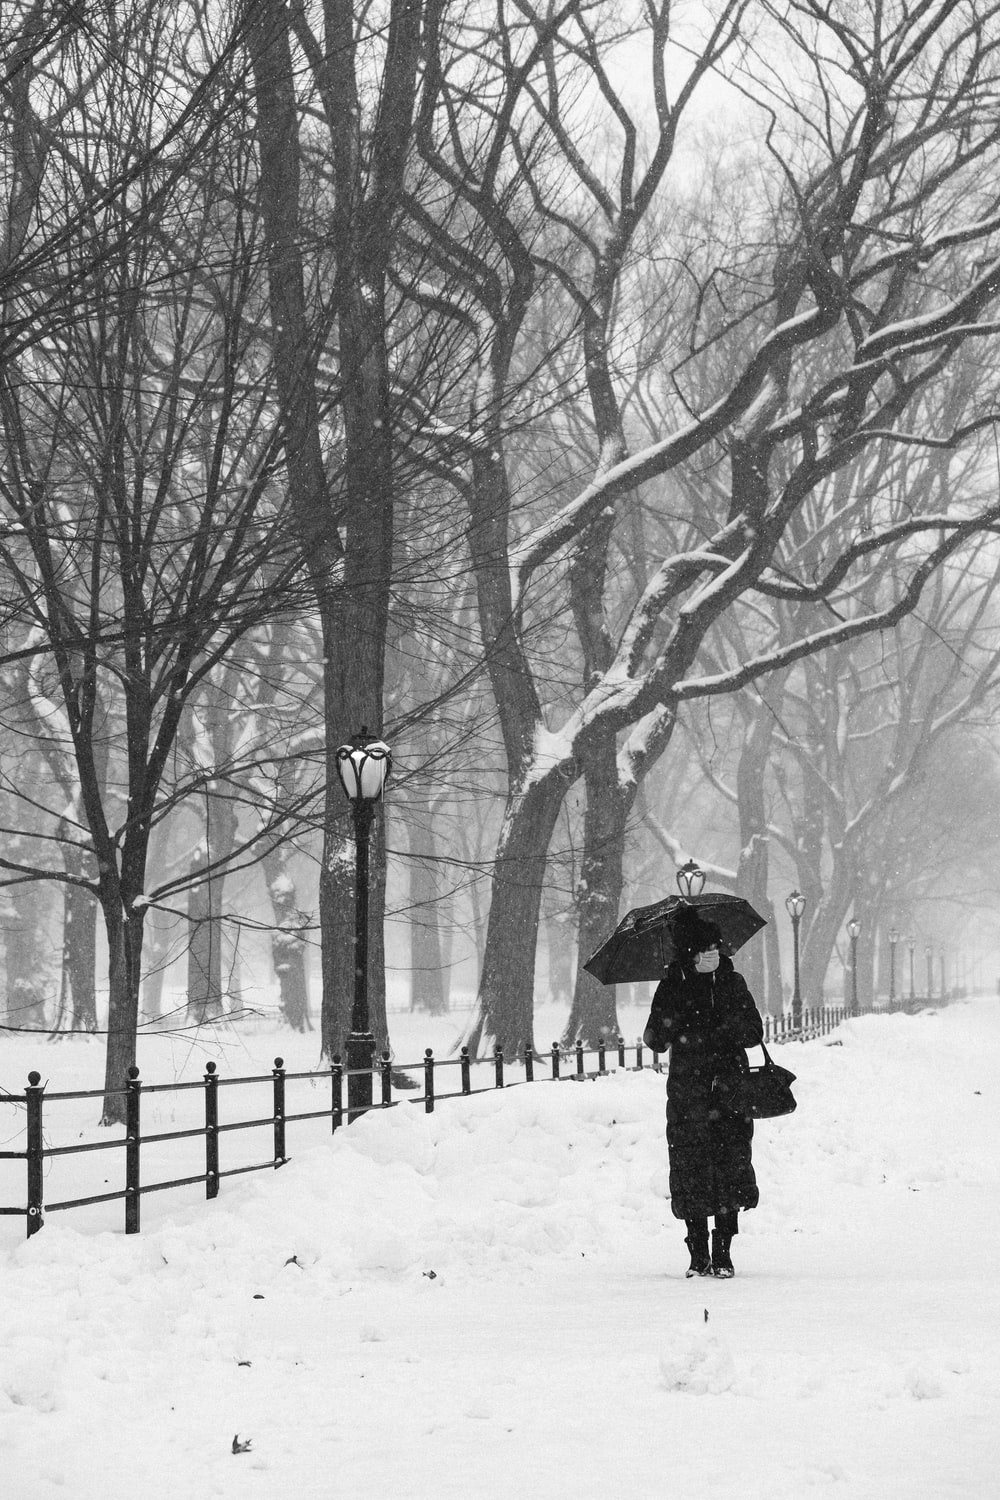 person in black coat holding umbrella walking on snow covered ground